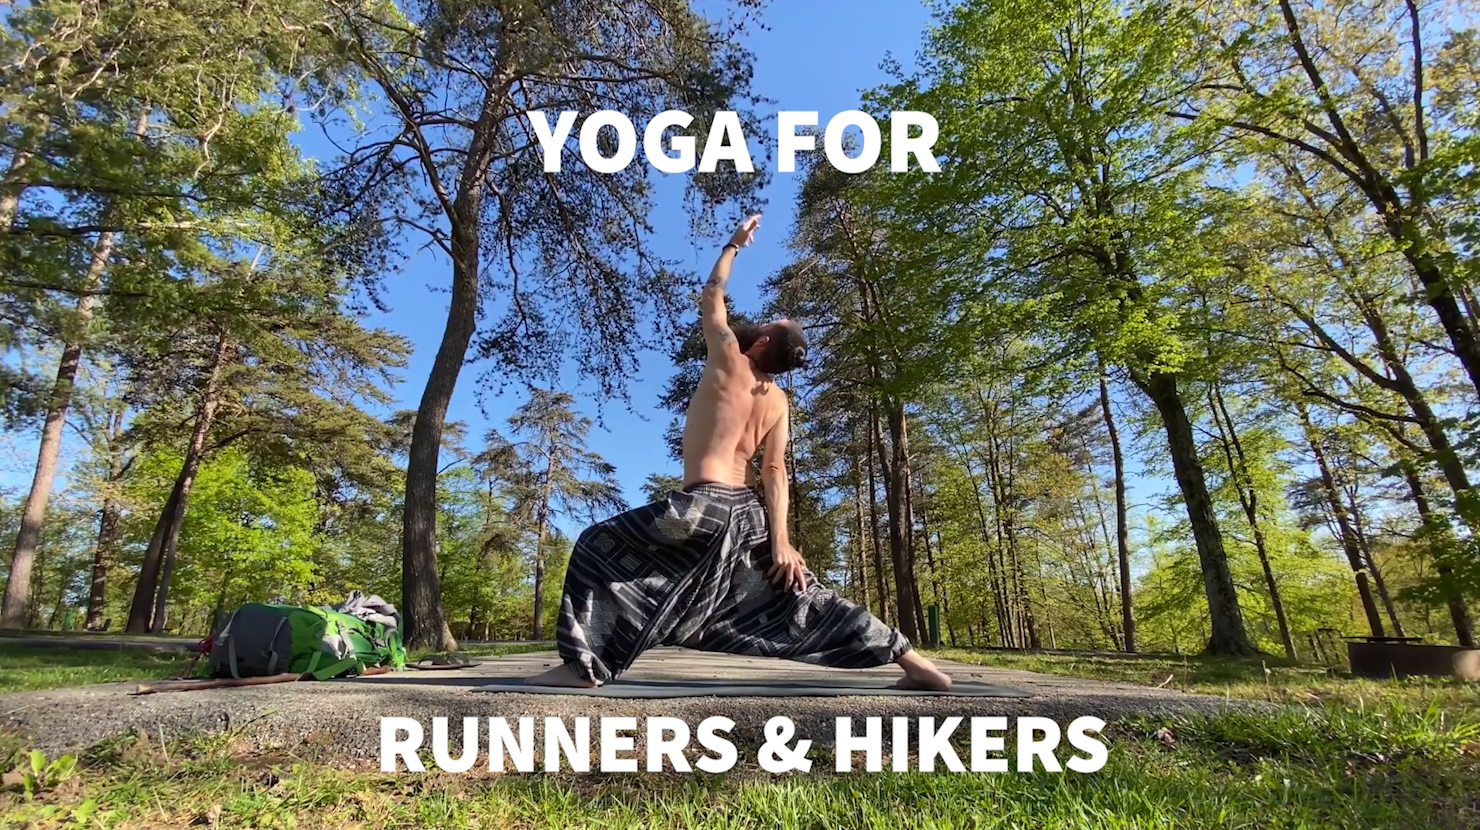 Yoga for Runners & Hikers